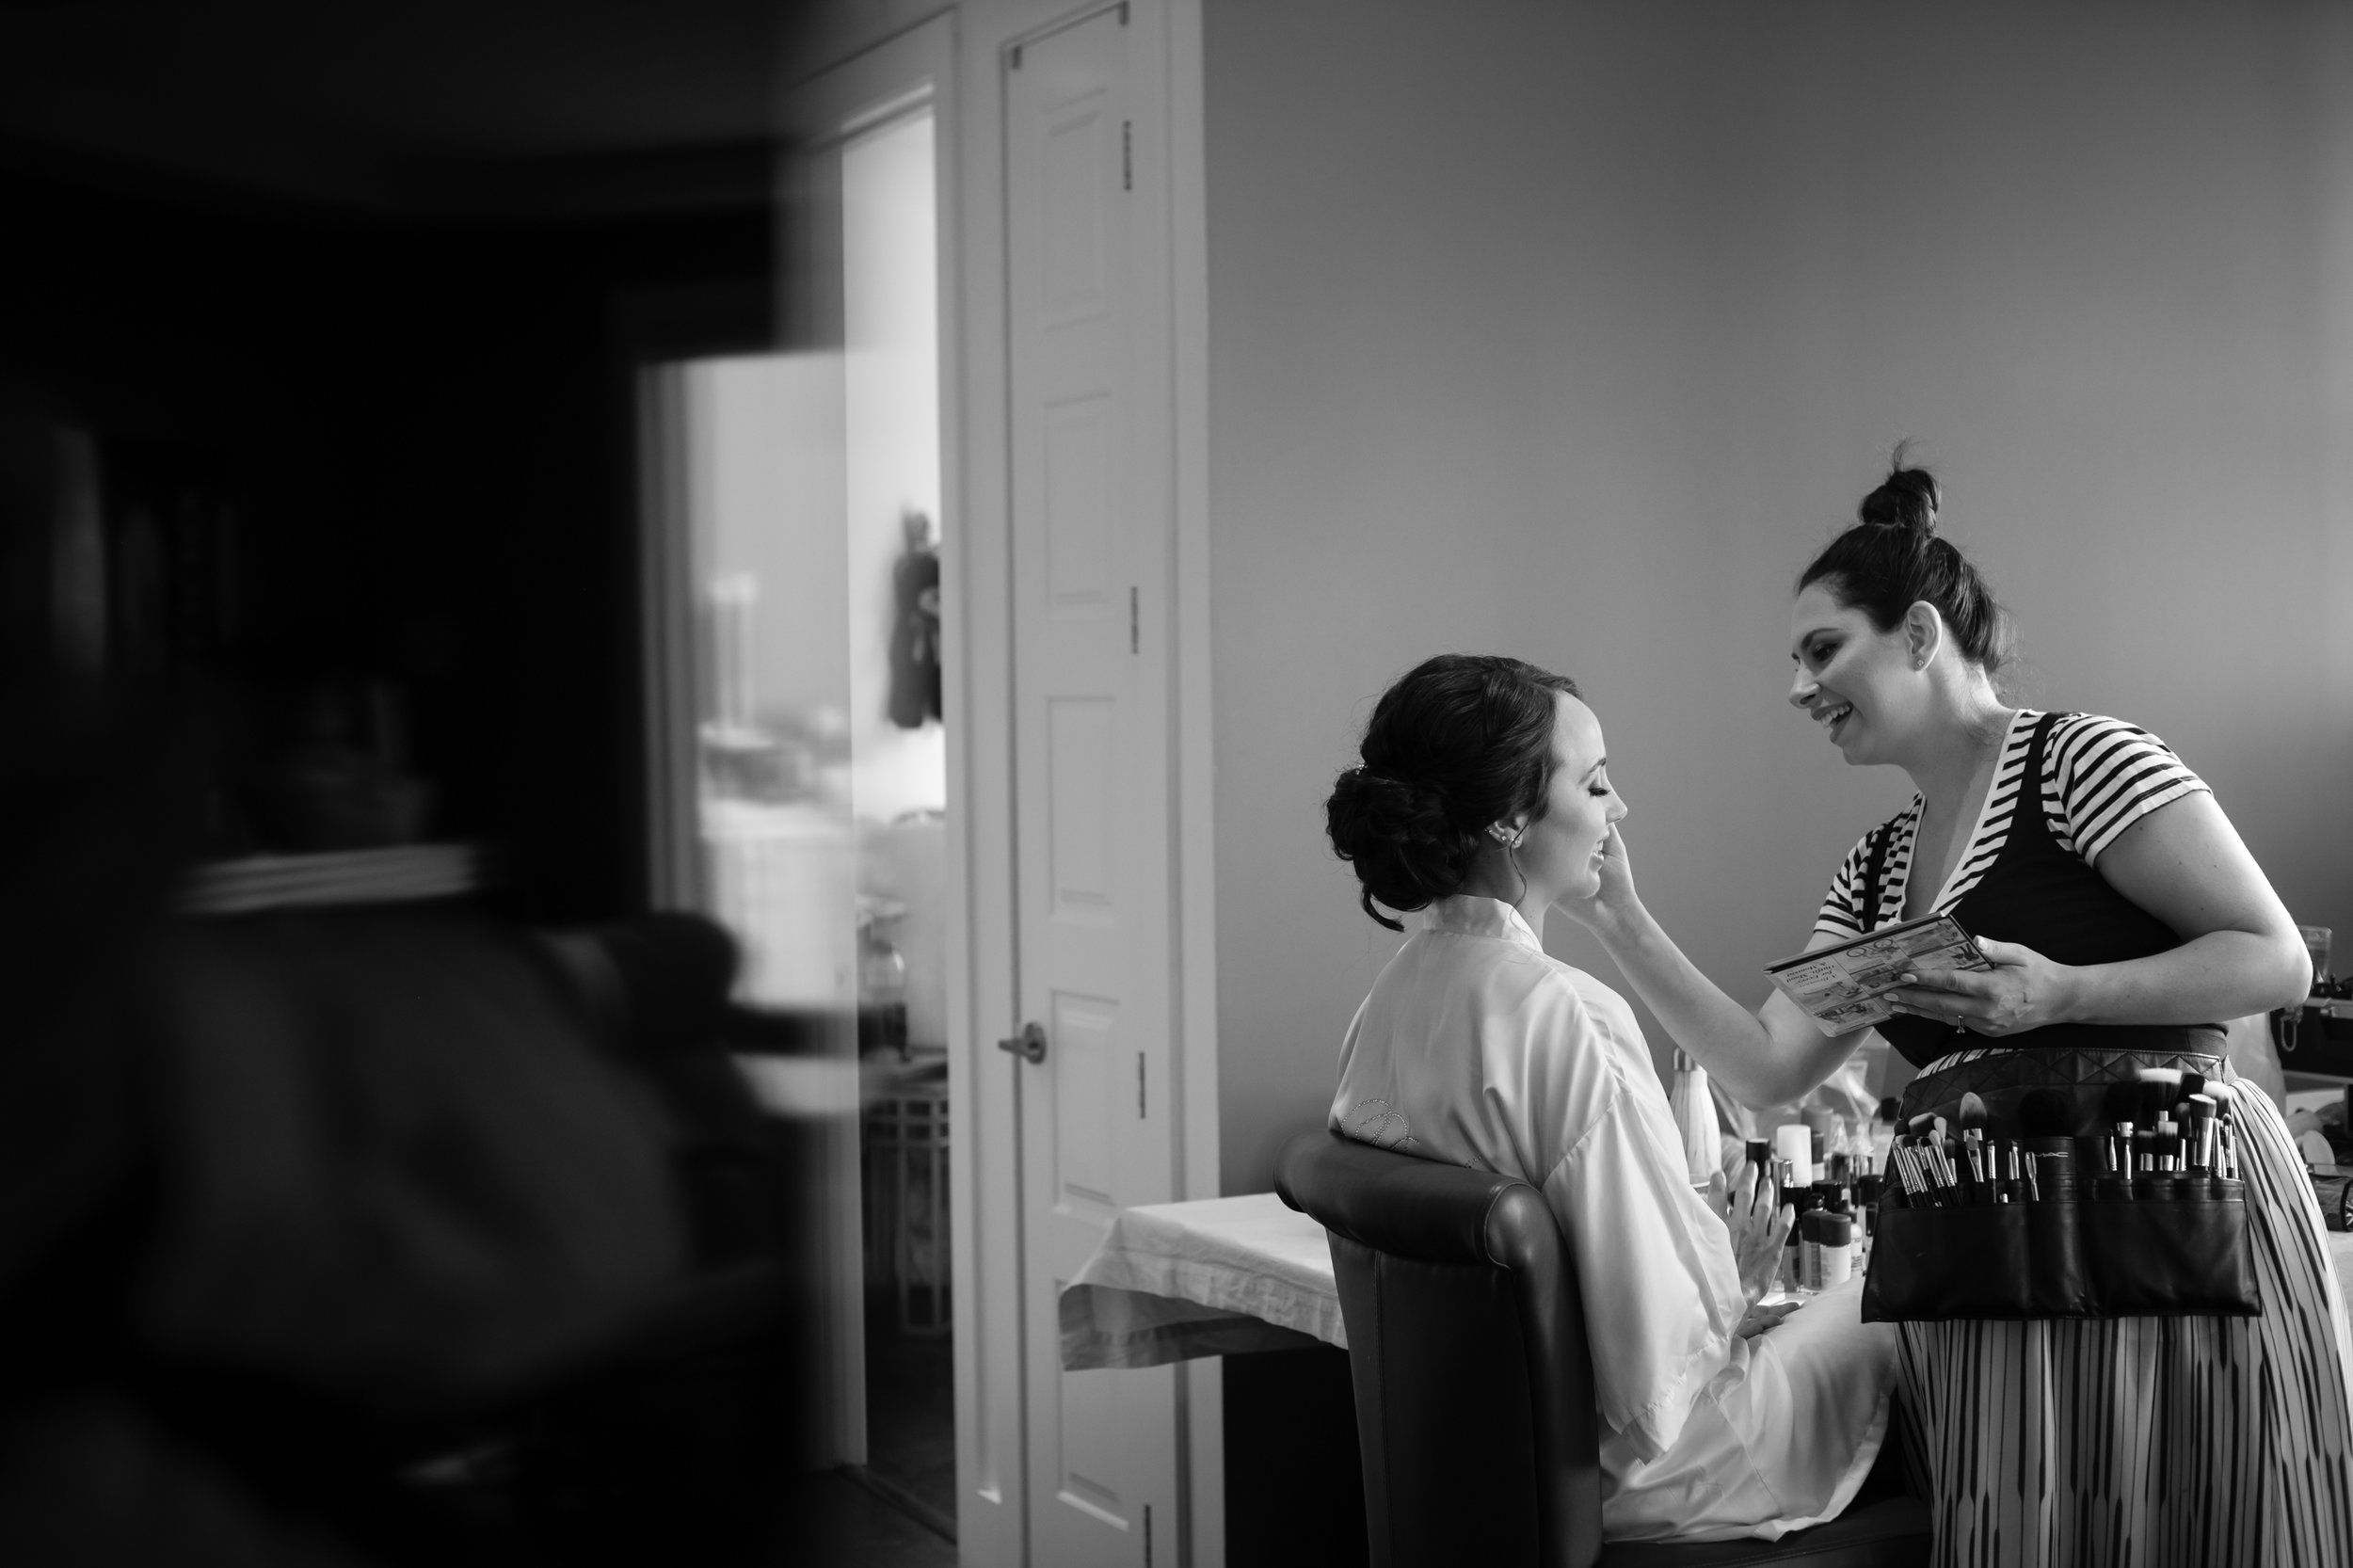 Laura_Danny_Wedding_Sneak_Peek_015.jpg